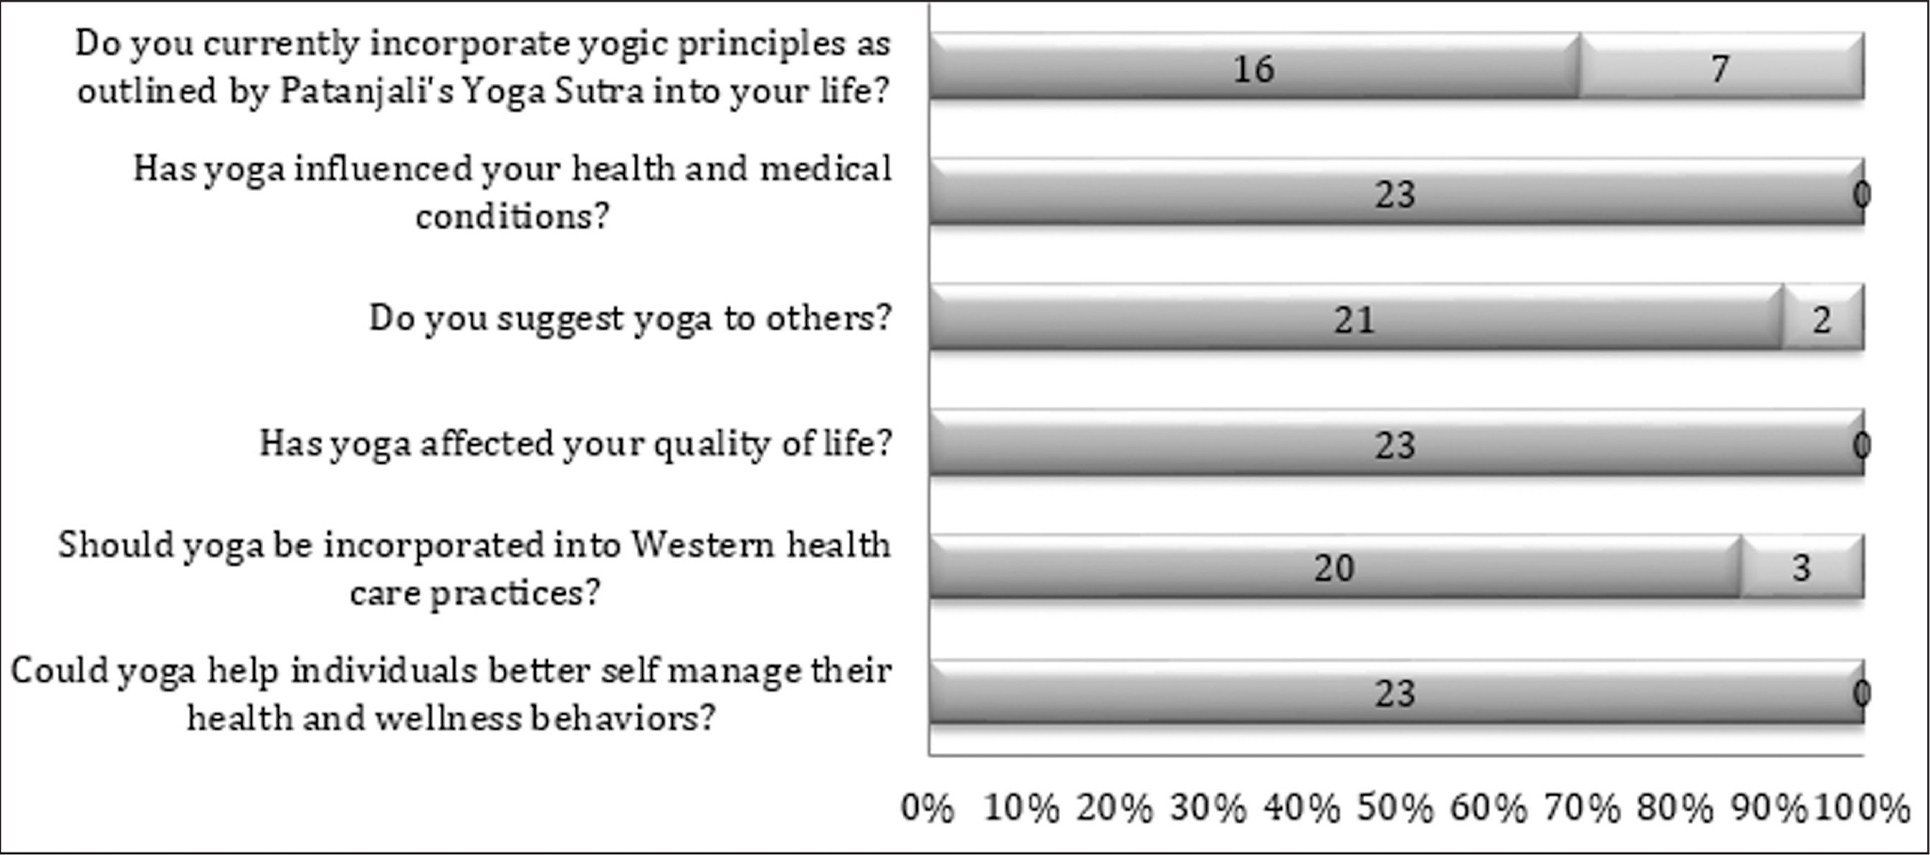 Sample dichotomous responses from yoga practitioners (n = 23).